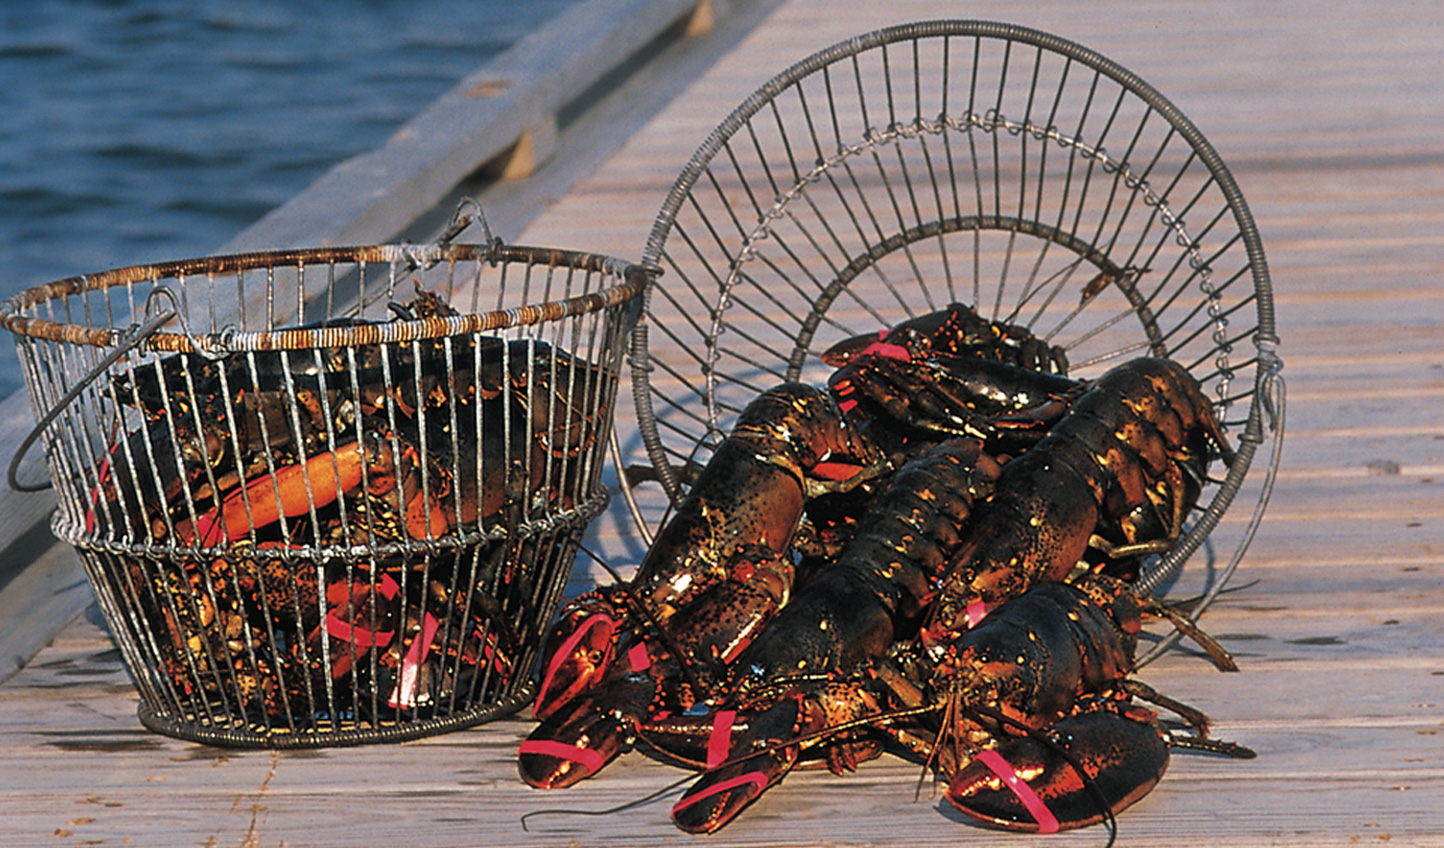 Haul in lobster traps from Nantucket Bay aboard The Wauwinet Lady